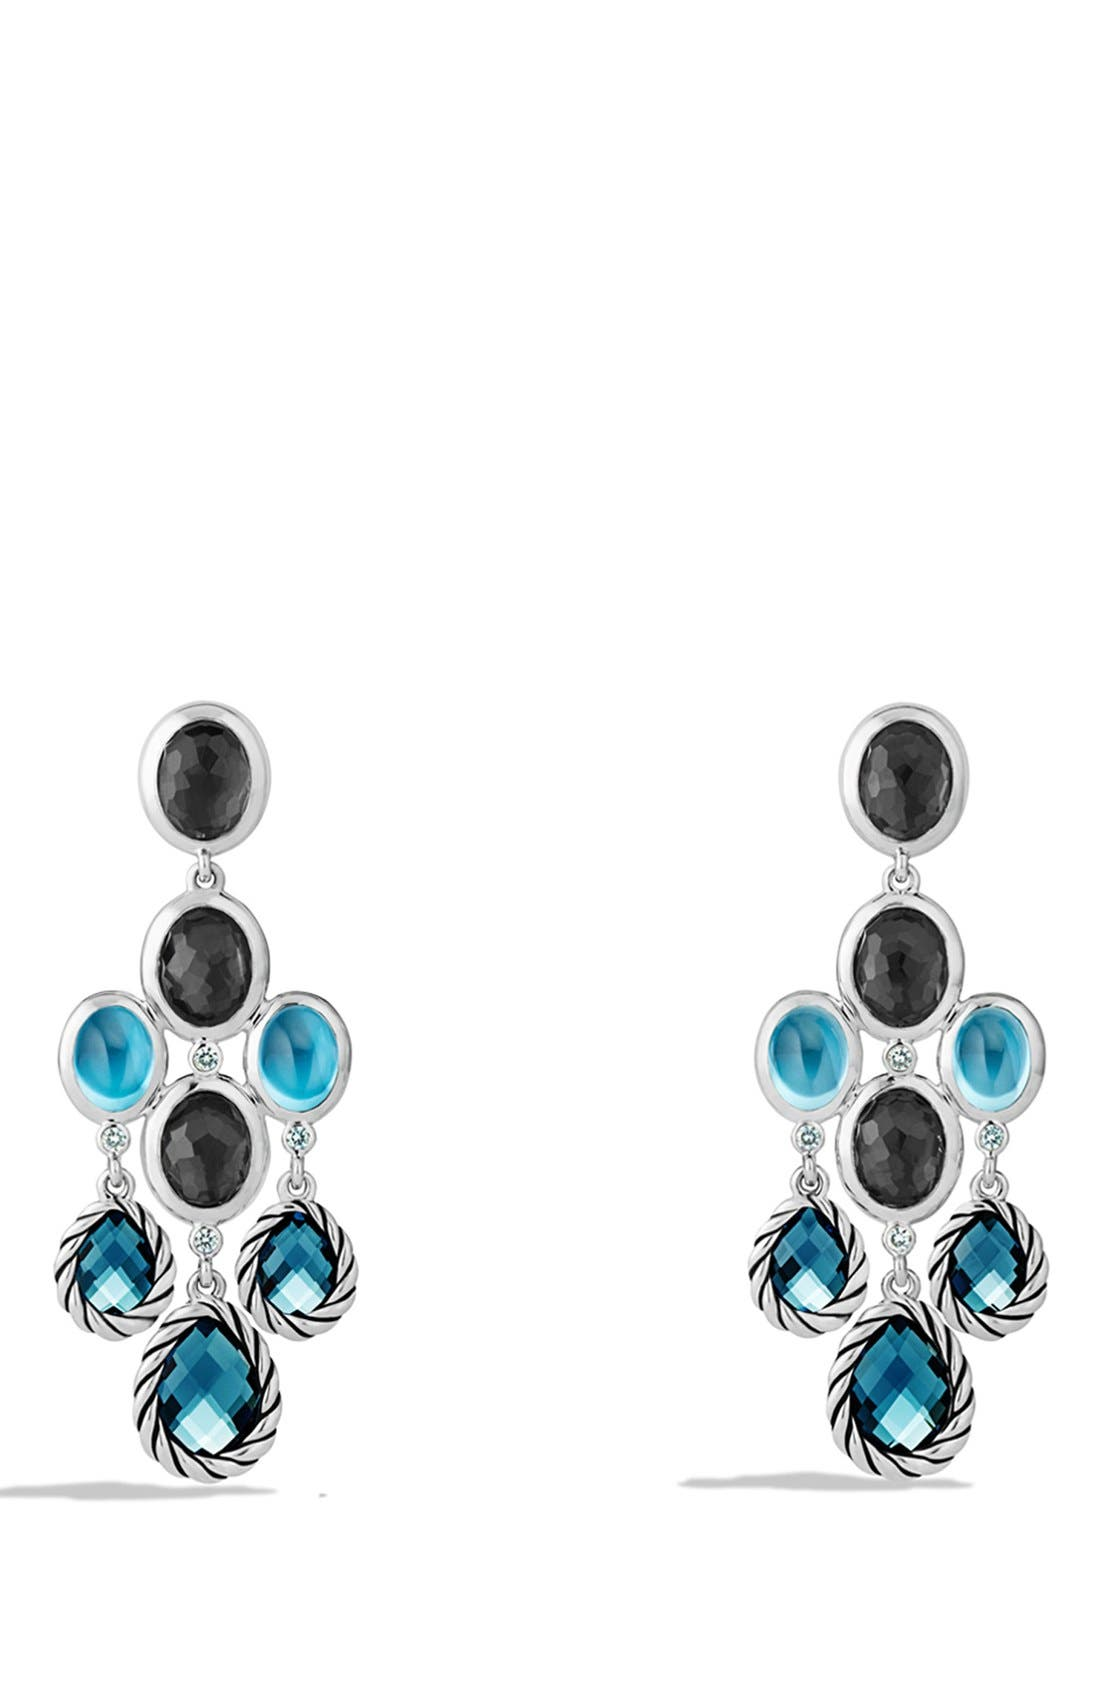 Alternate Image 1 Selected - David Yurman 'Mosaic - Color Classic' Chandelier Earrings with Hampton Blue Topaz, Black Orchid & Gray Sapphires